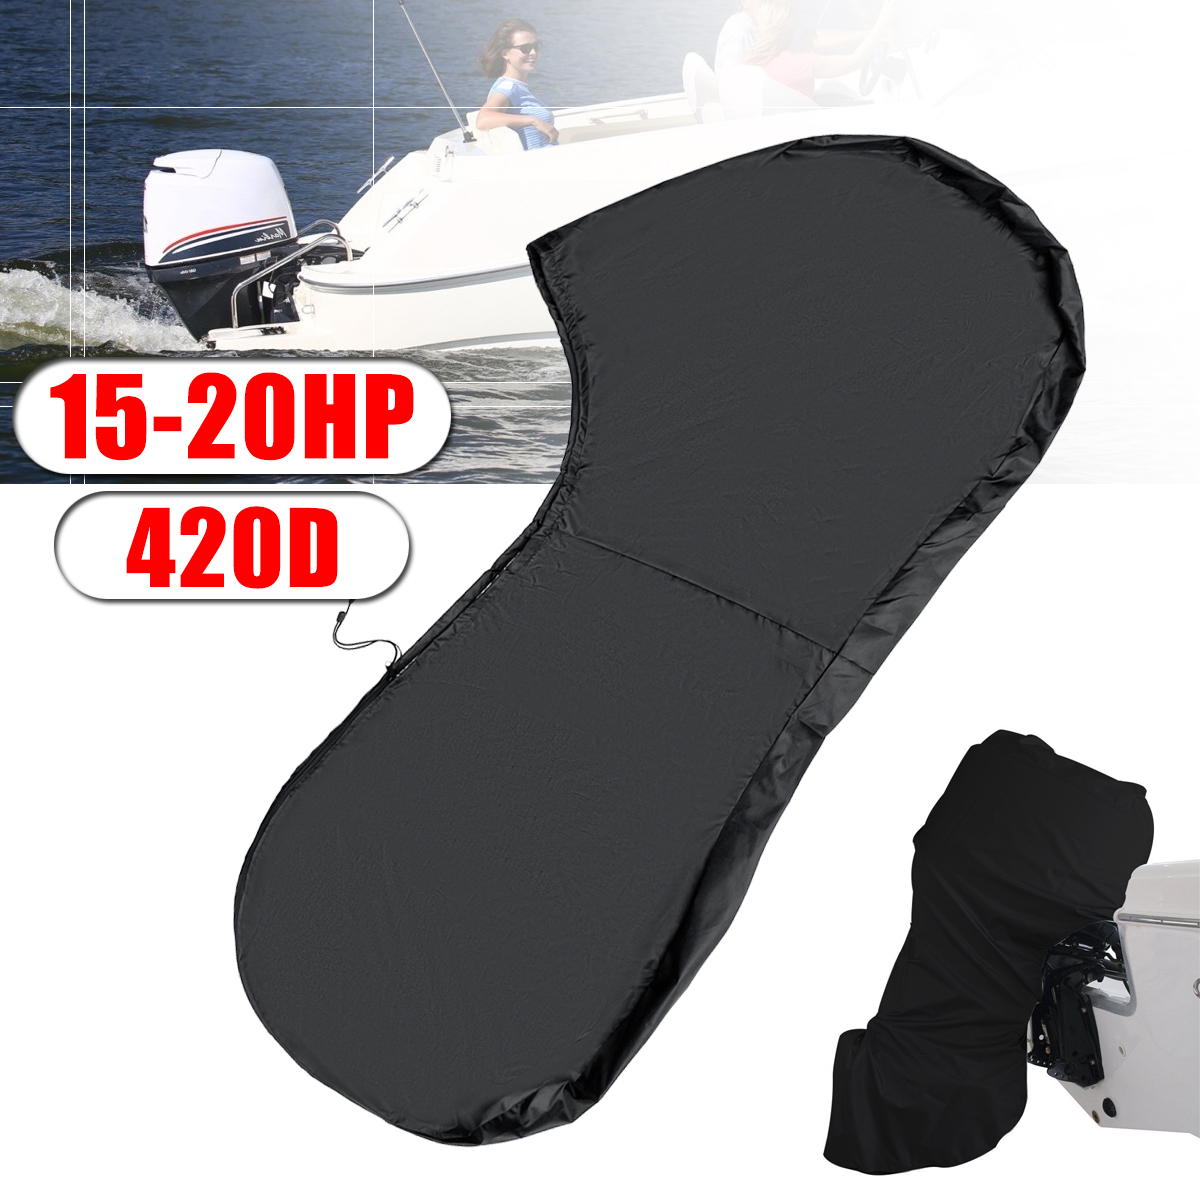 420D 125cm Boat Full Outboard Engine Protector Motor Cover For 15-20HP Boat Motors Waterproof